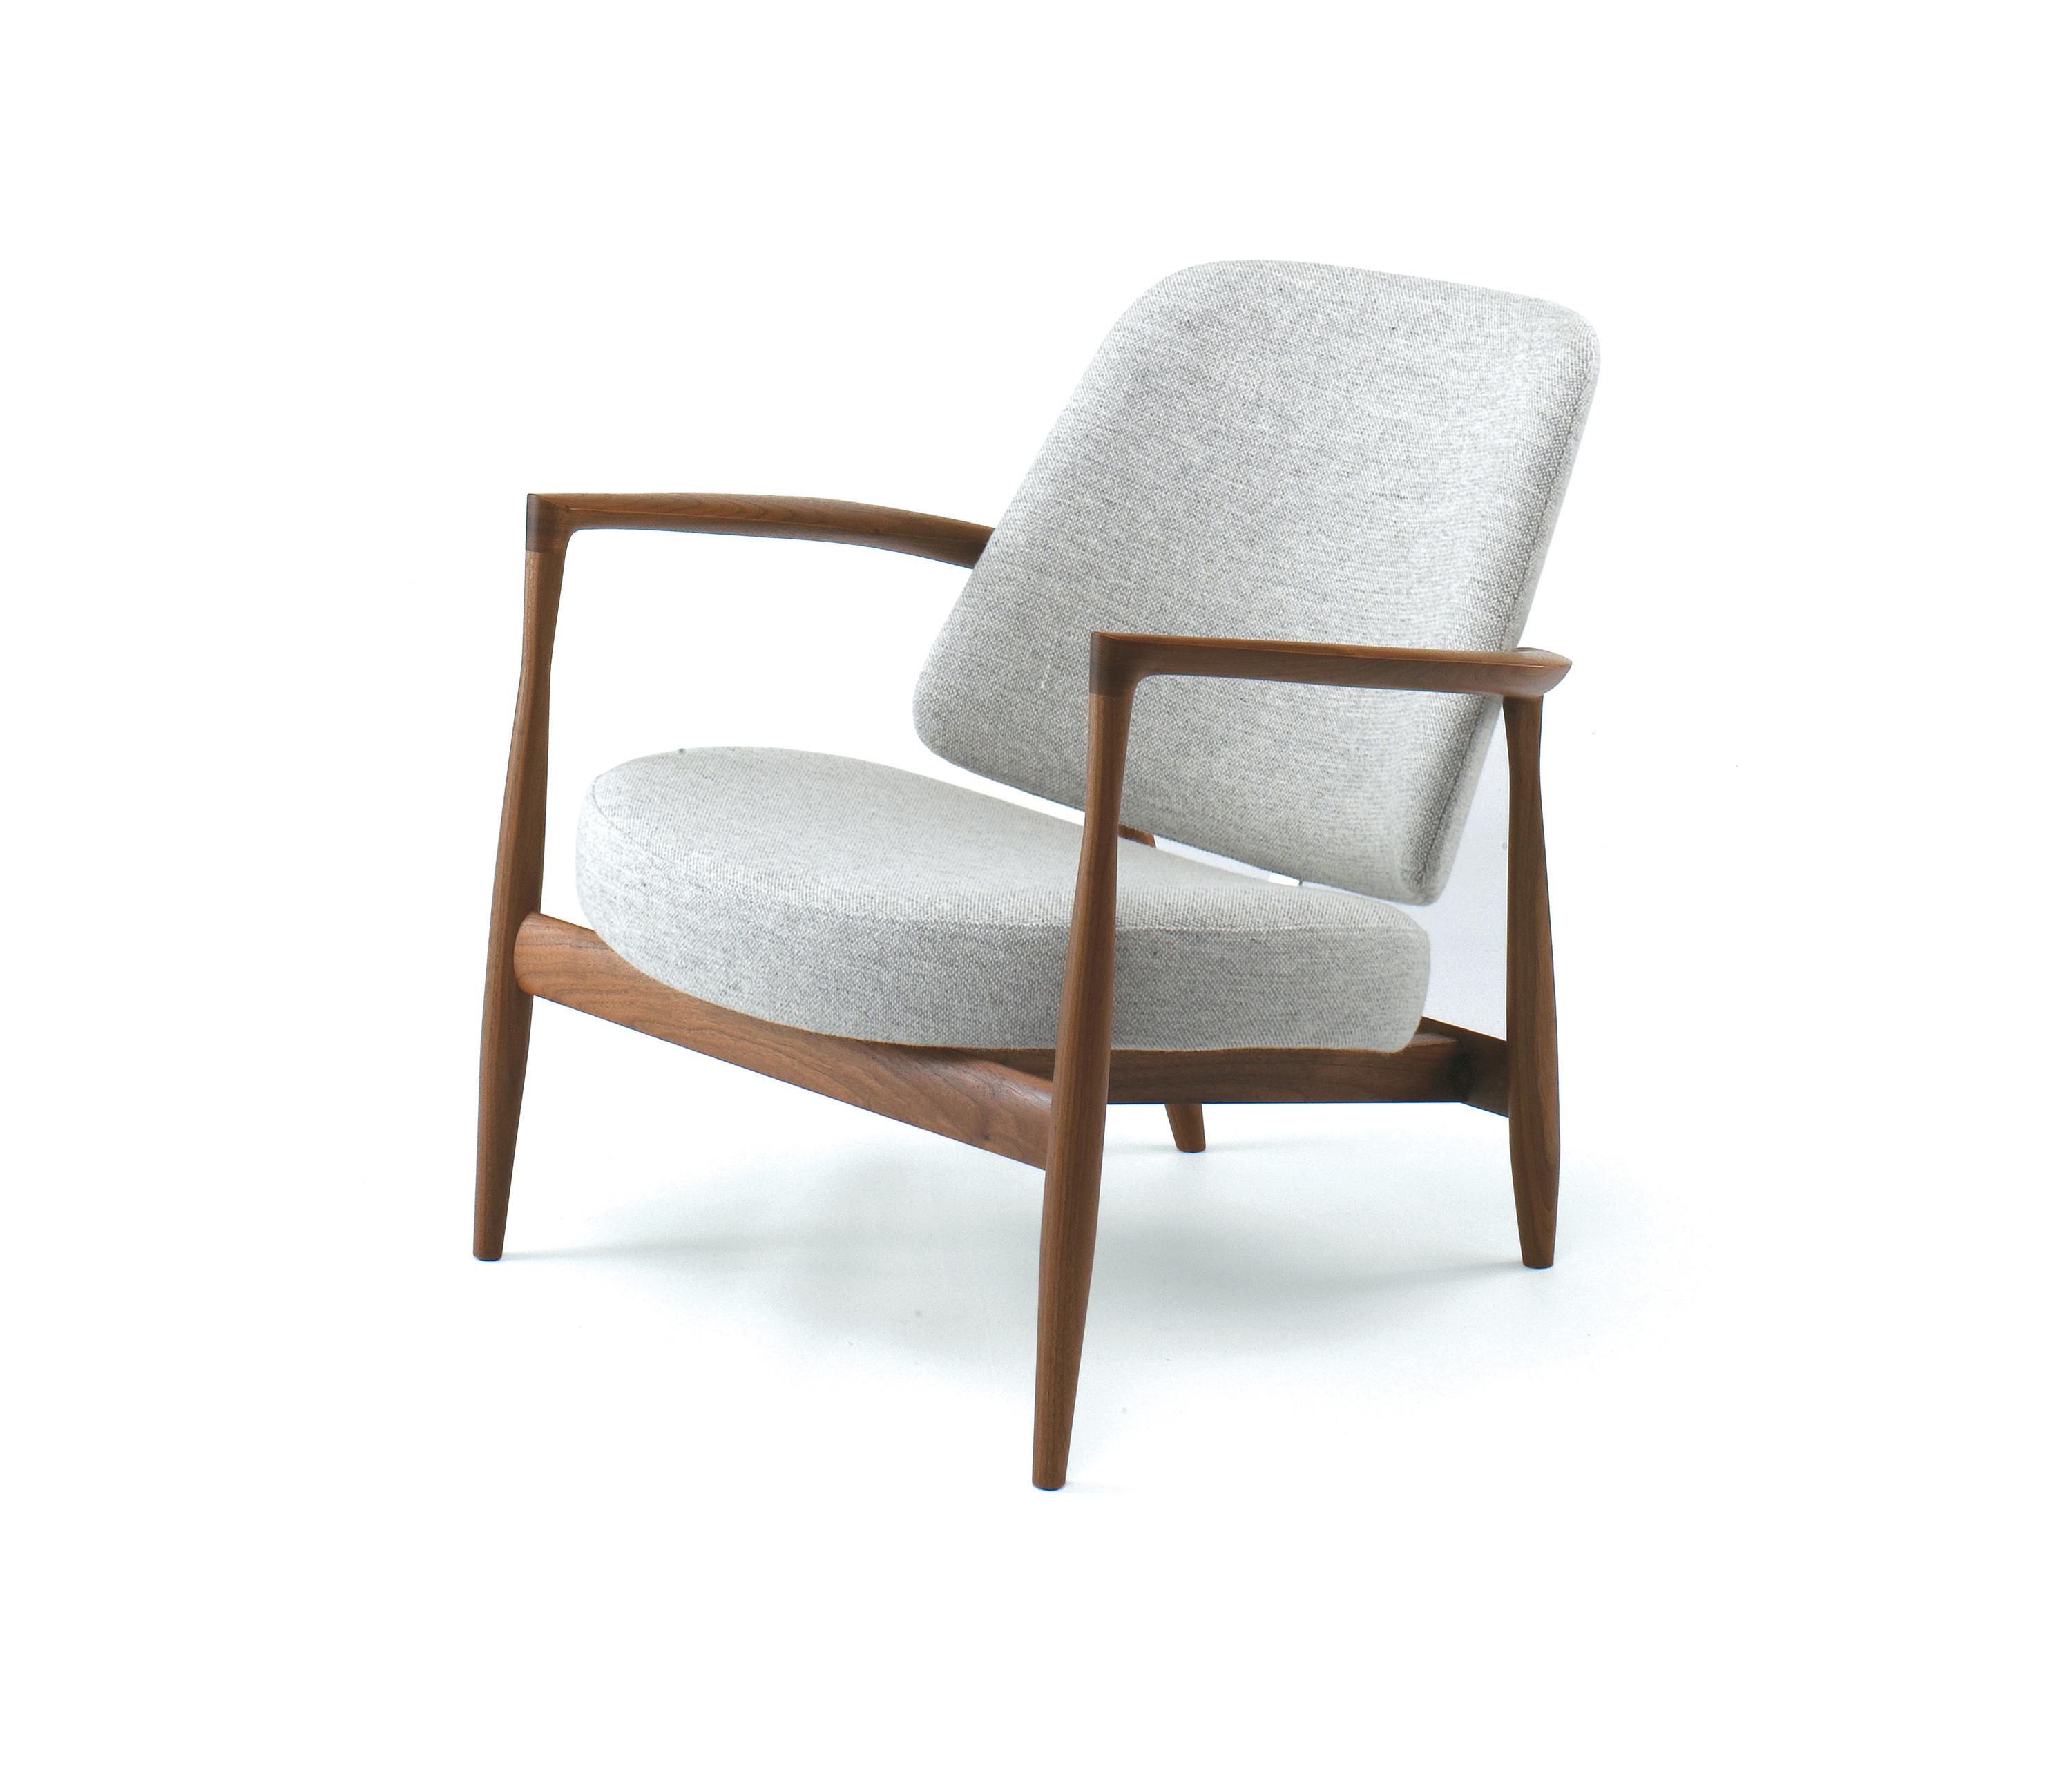 IL-02 EASY CHAIR - Armchairs from Kitani Japan Inc ...